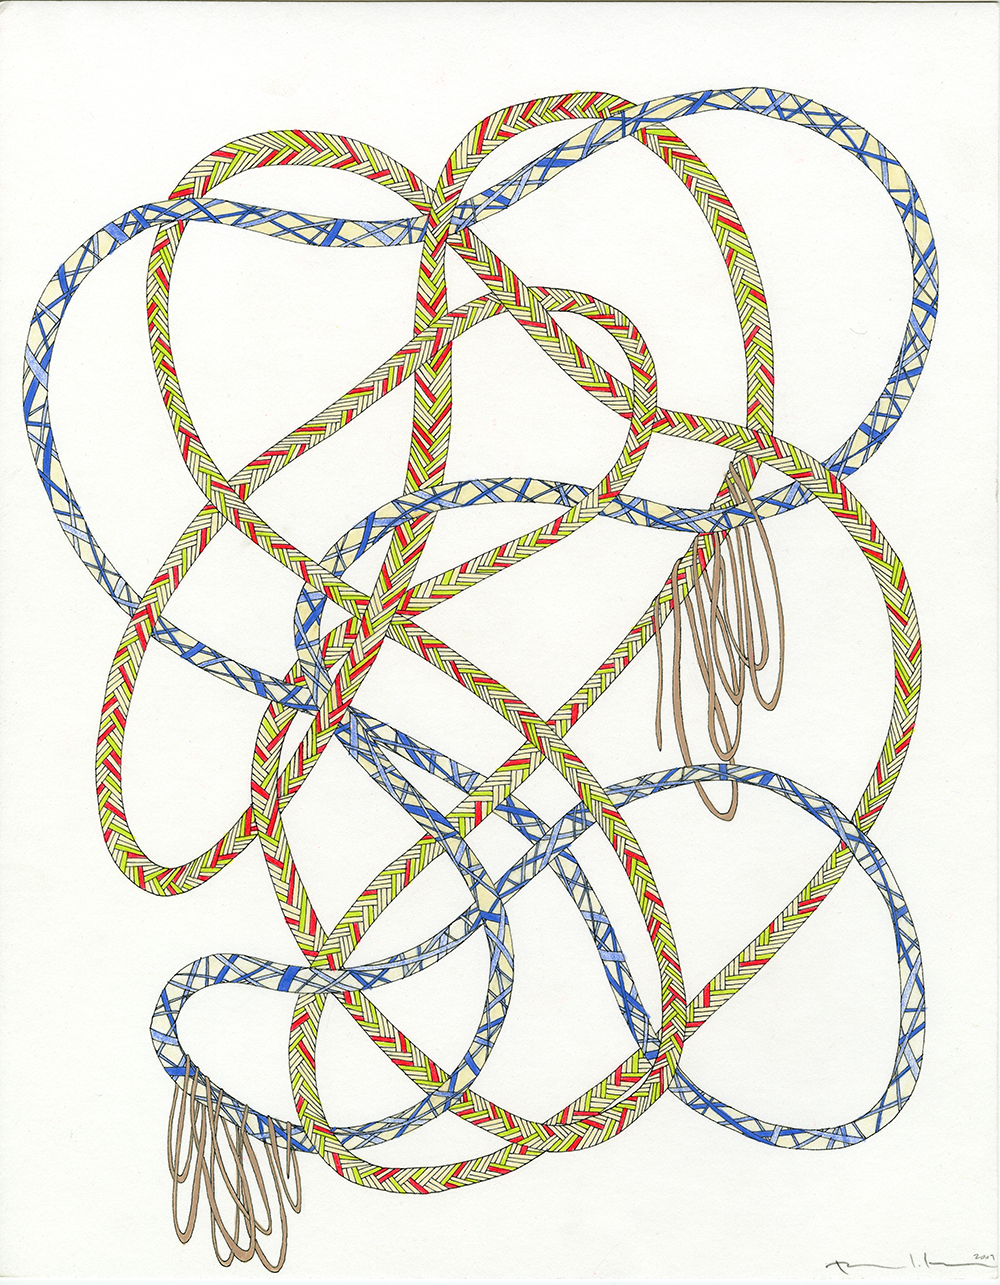 Ropes in Neons, Blue, & Tan_11x14_2009_CC.jpg